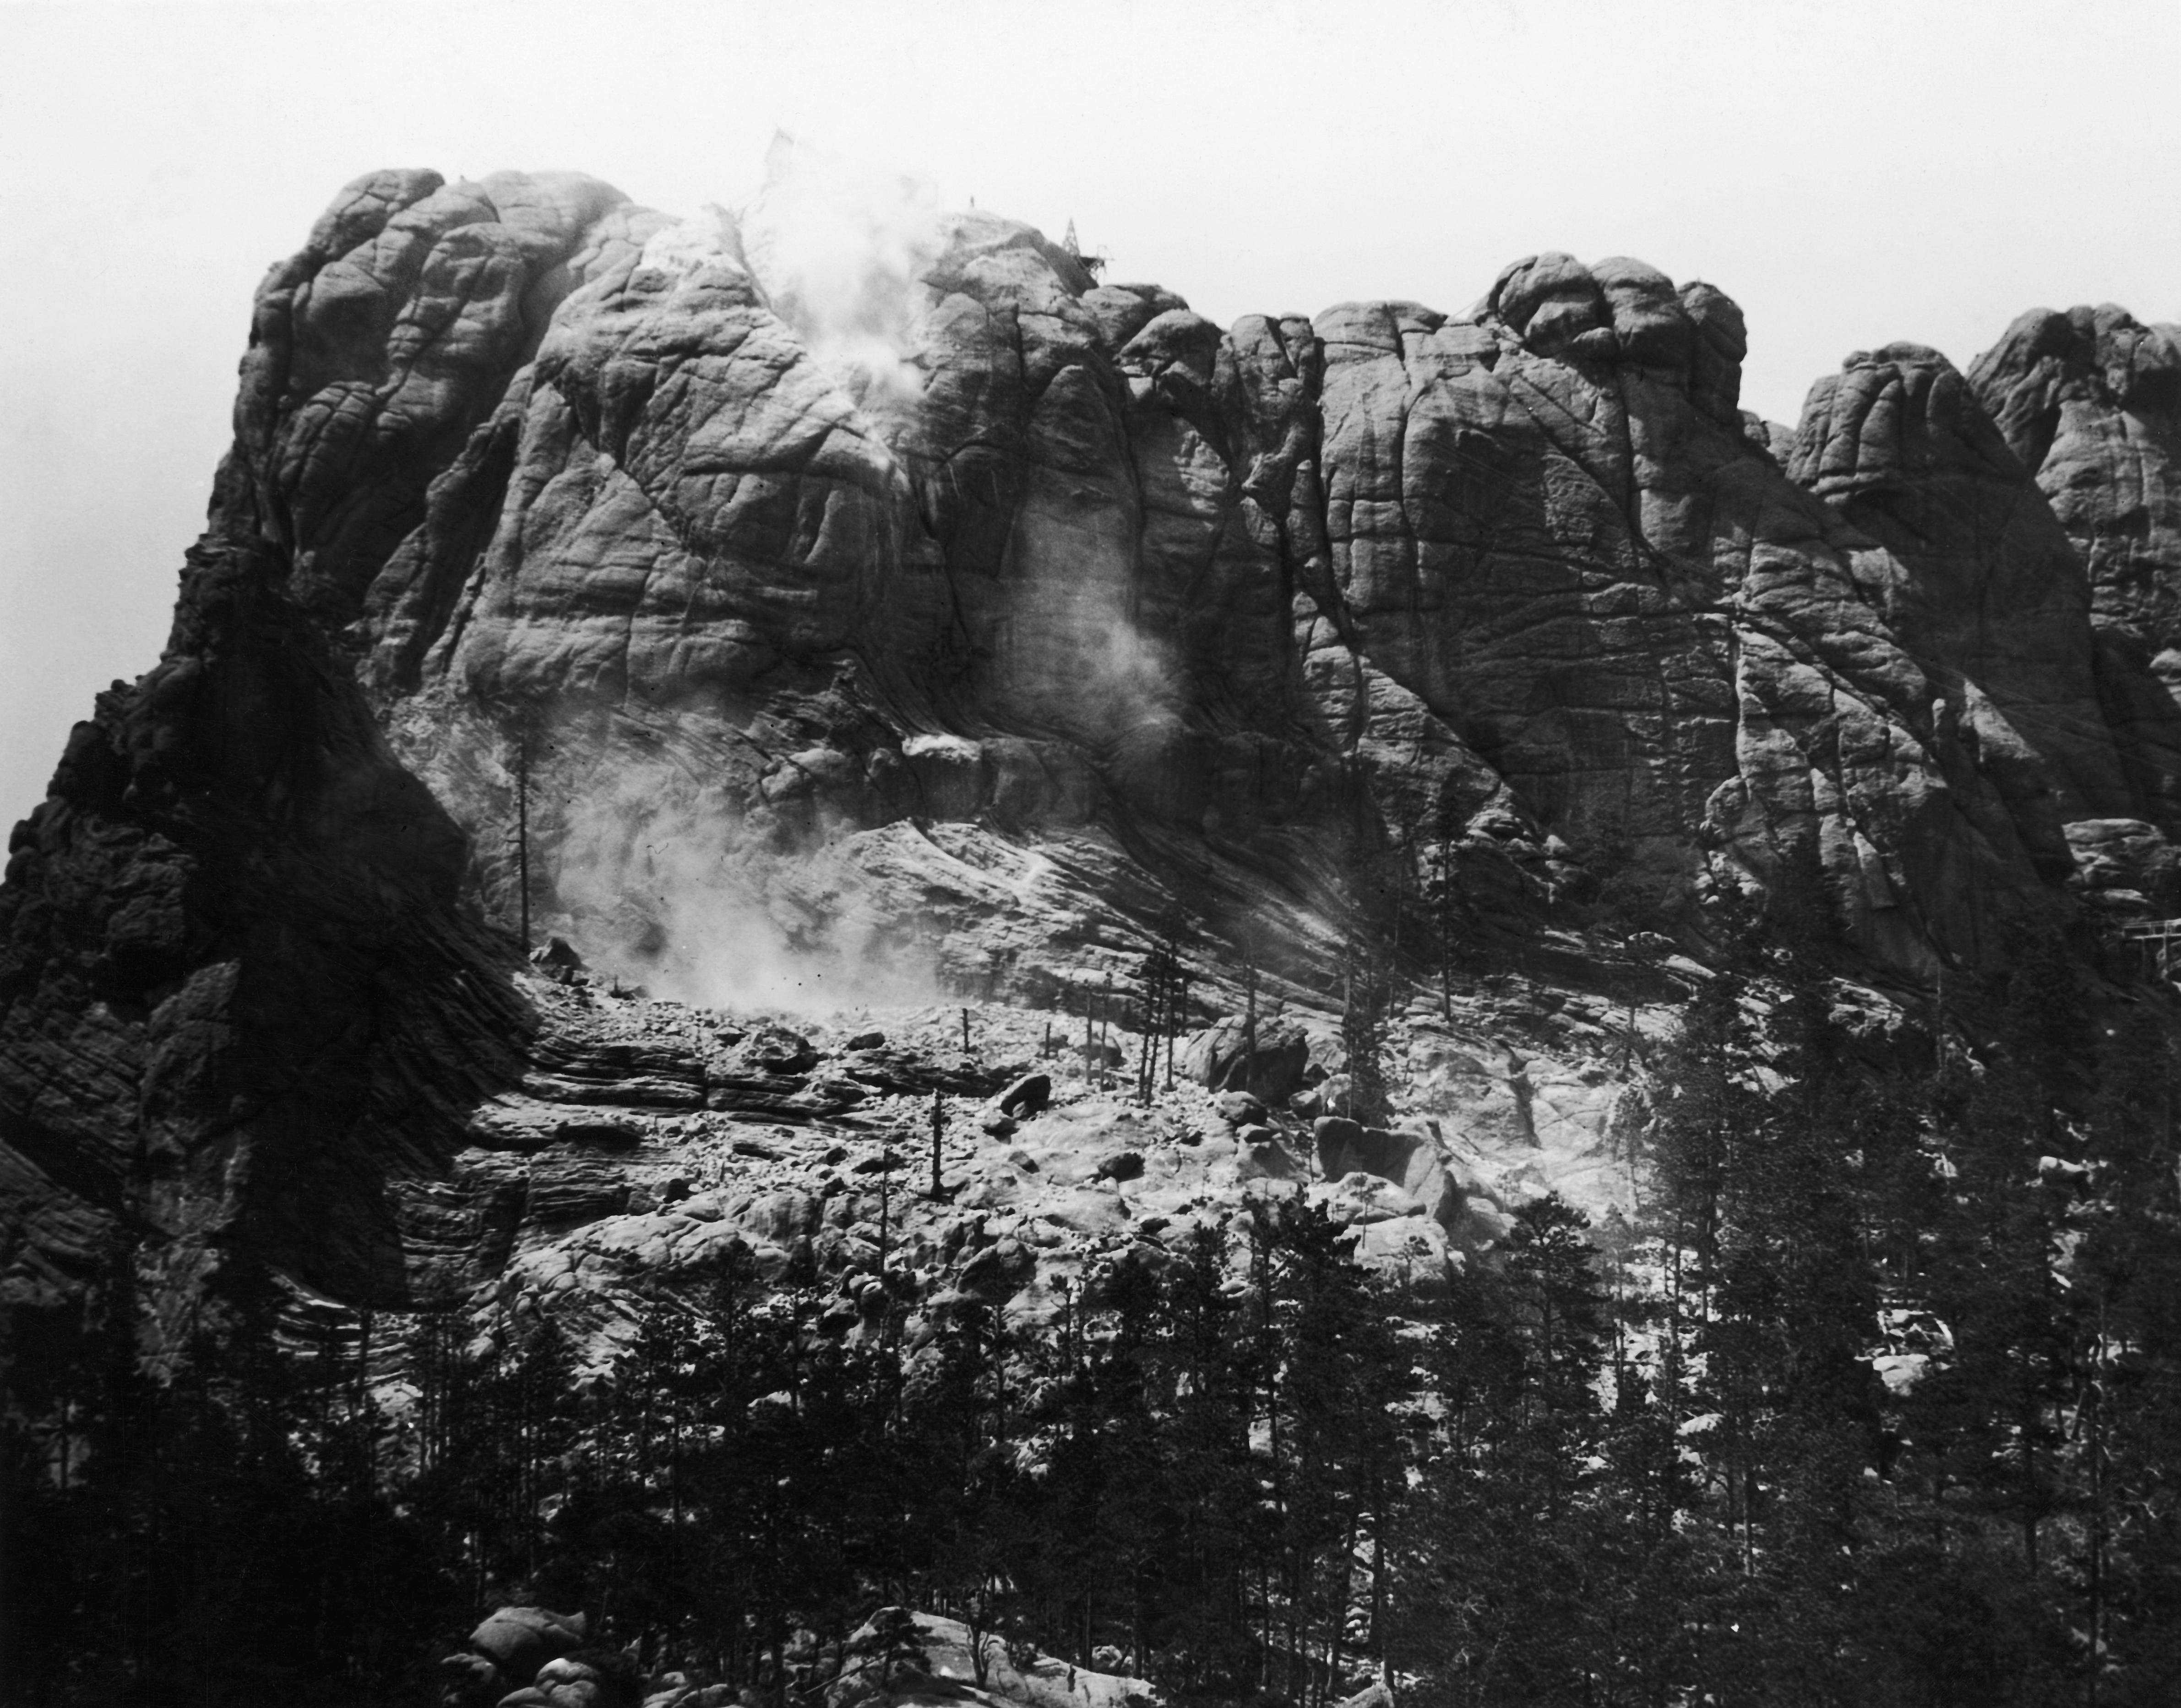 Mount Rushmore with carving just beginning.